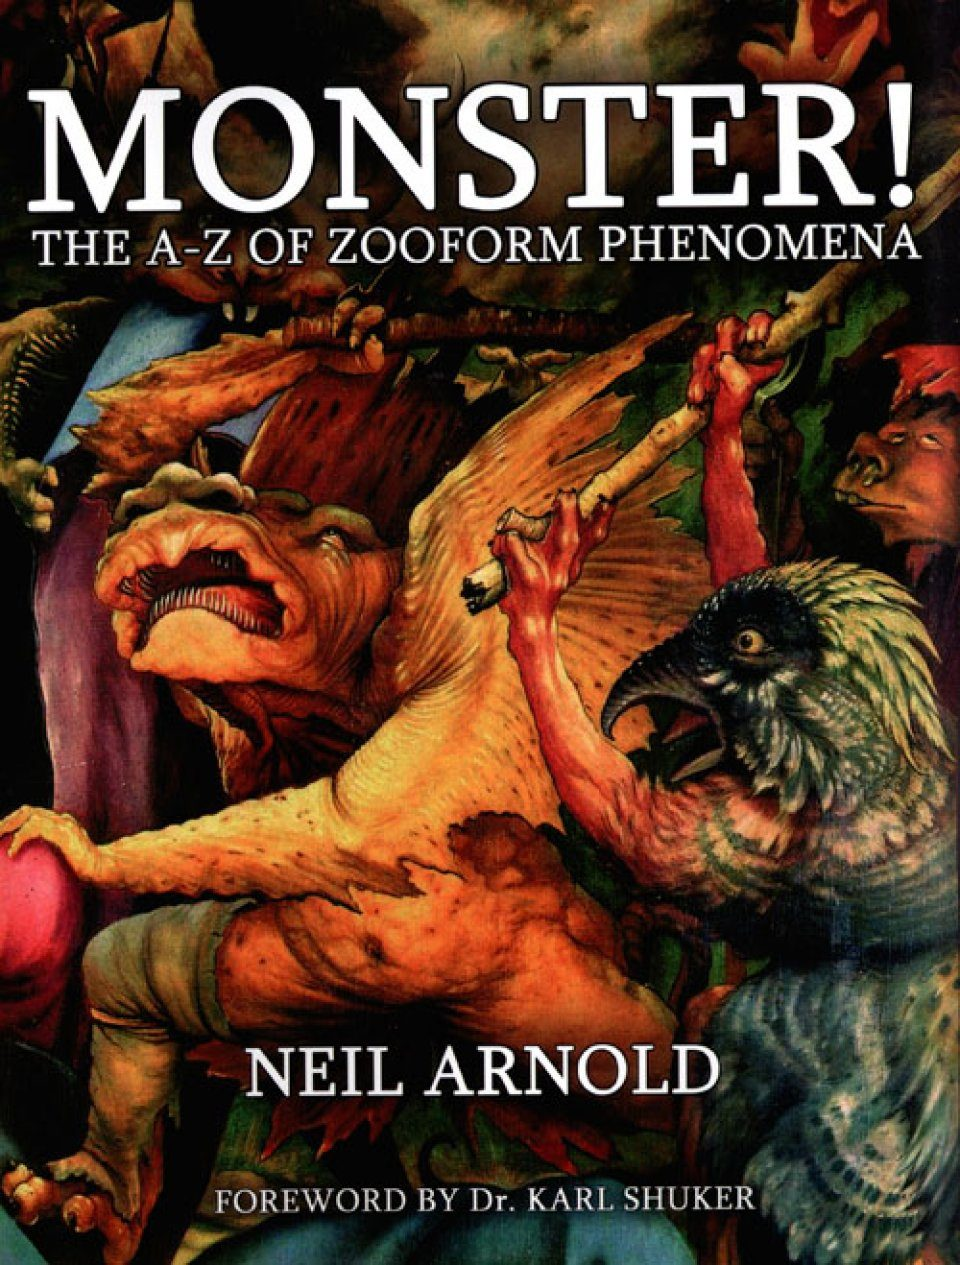 Monster!: The A-Z of Zooform Phenomena